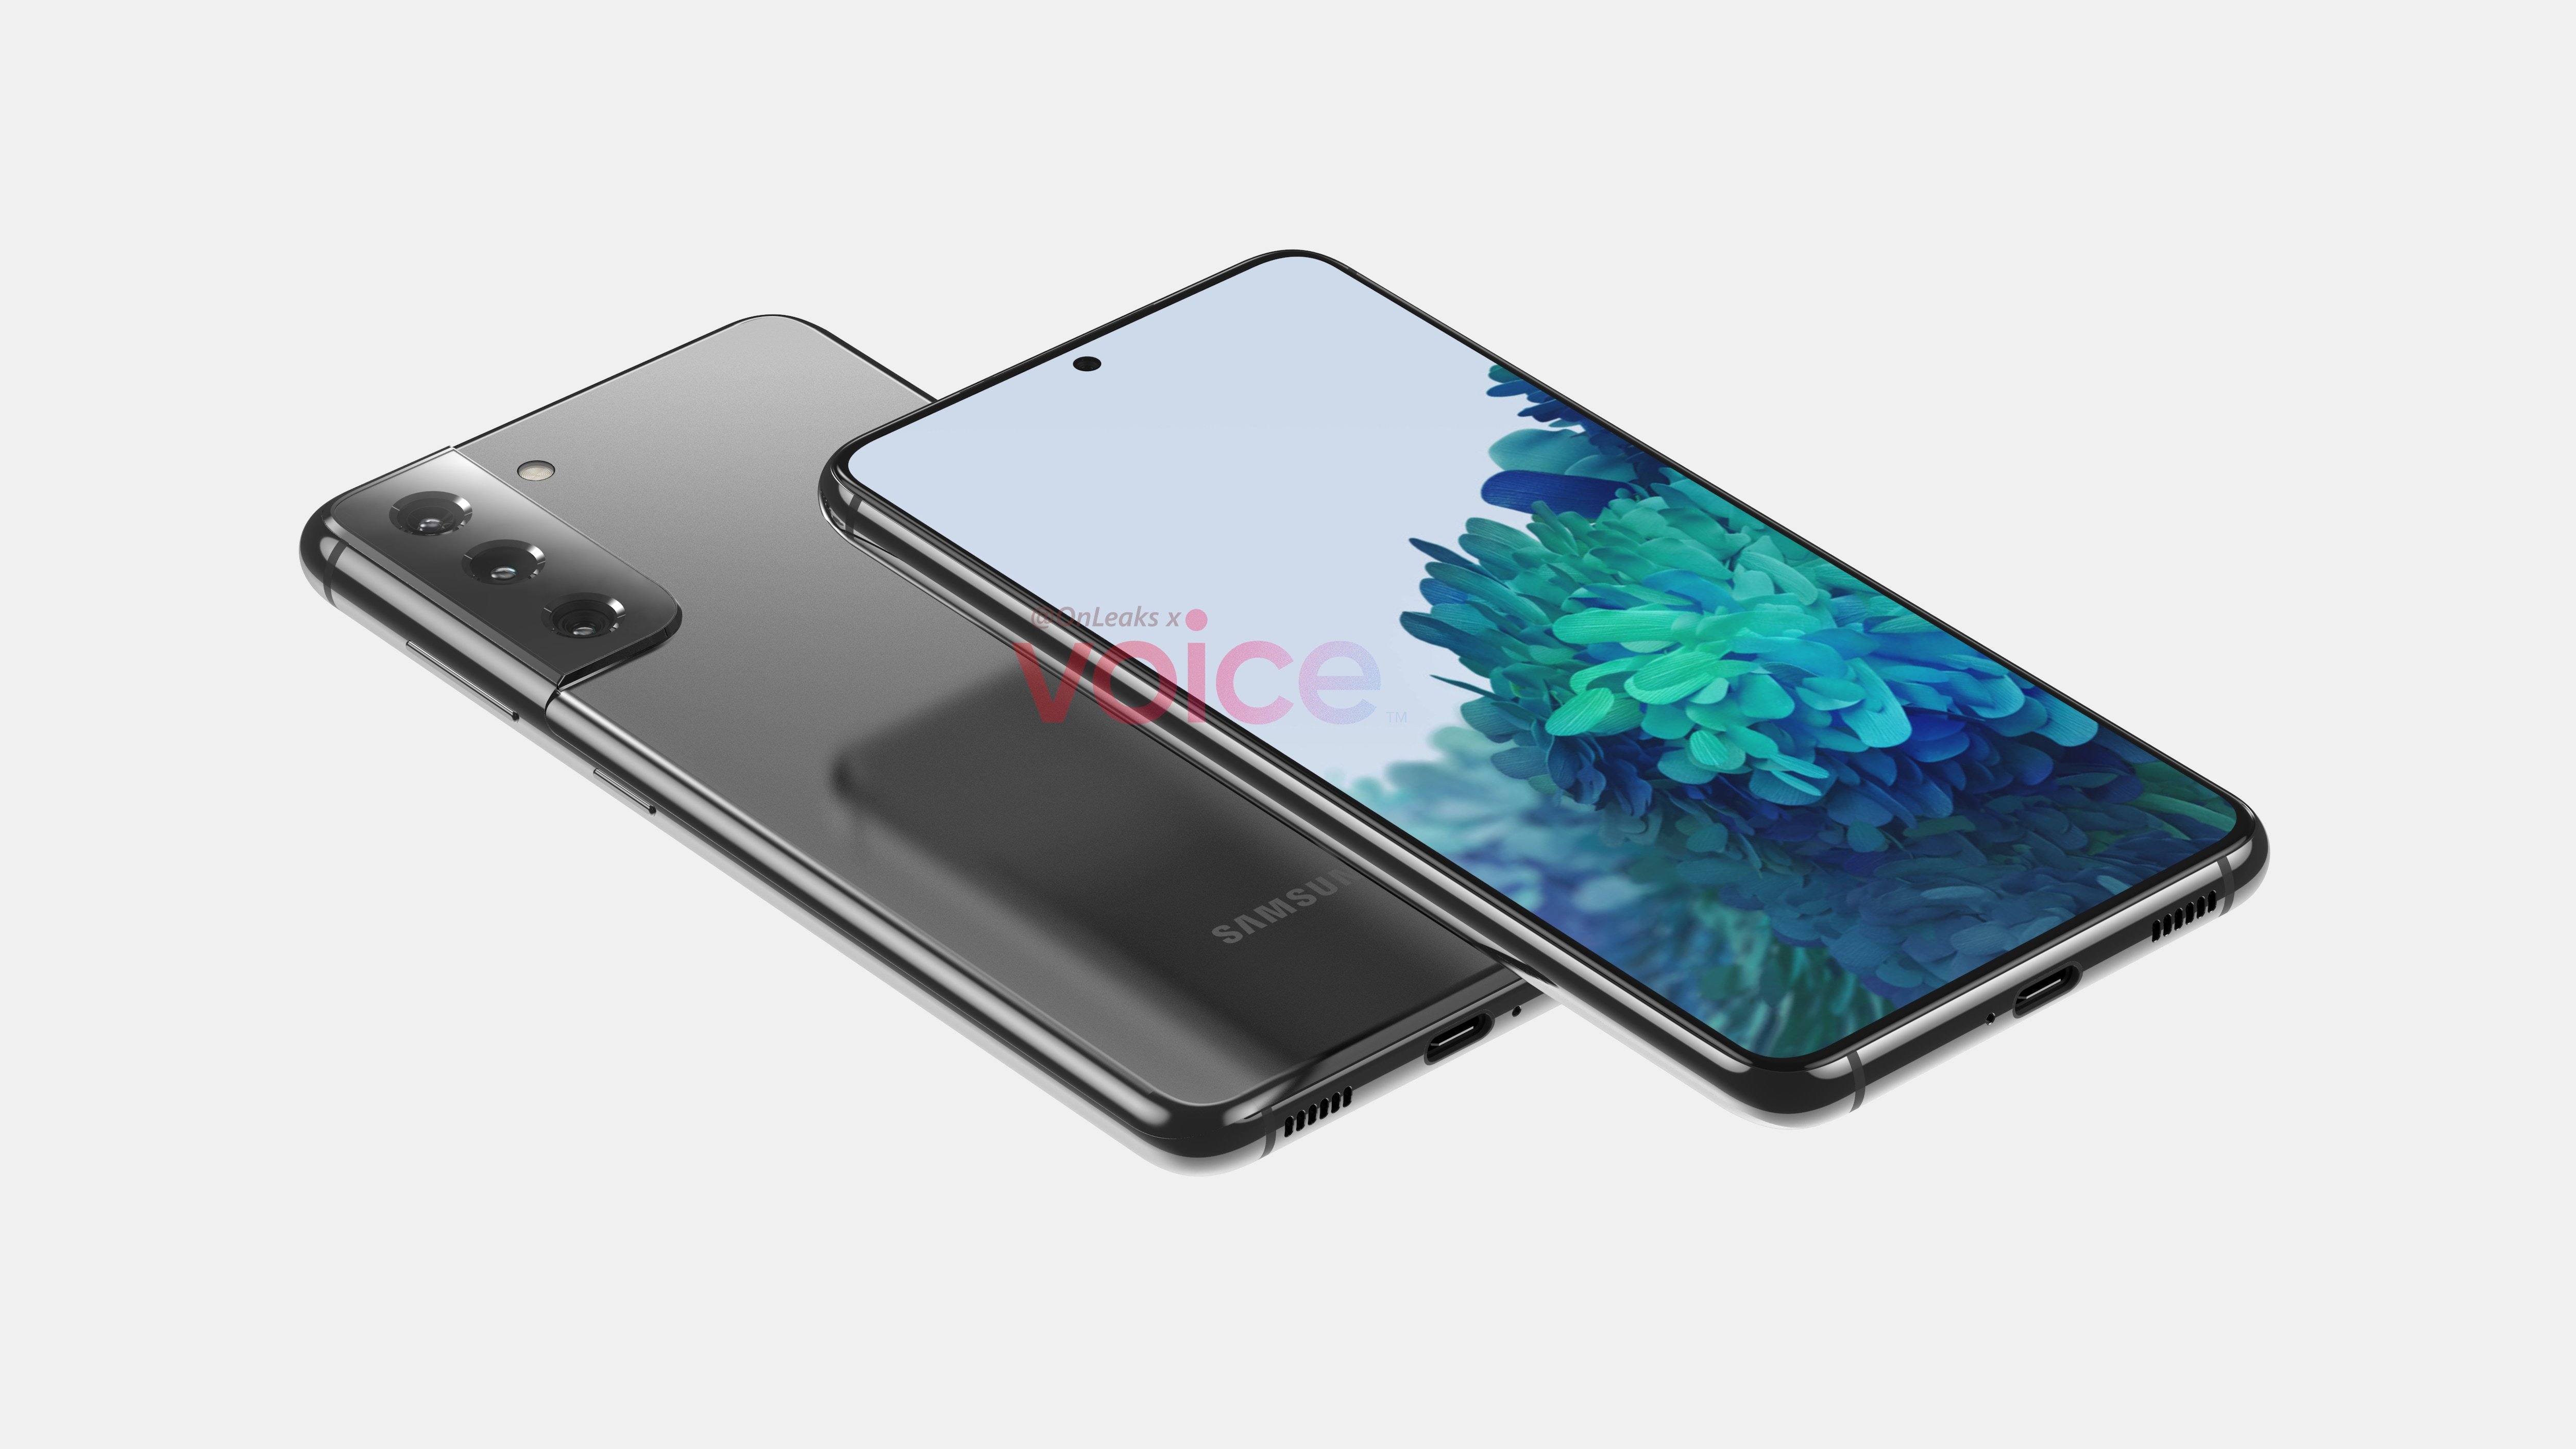 Samsung's next Galaxy S flagships could come as early as January 2021